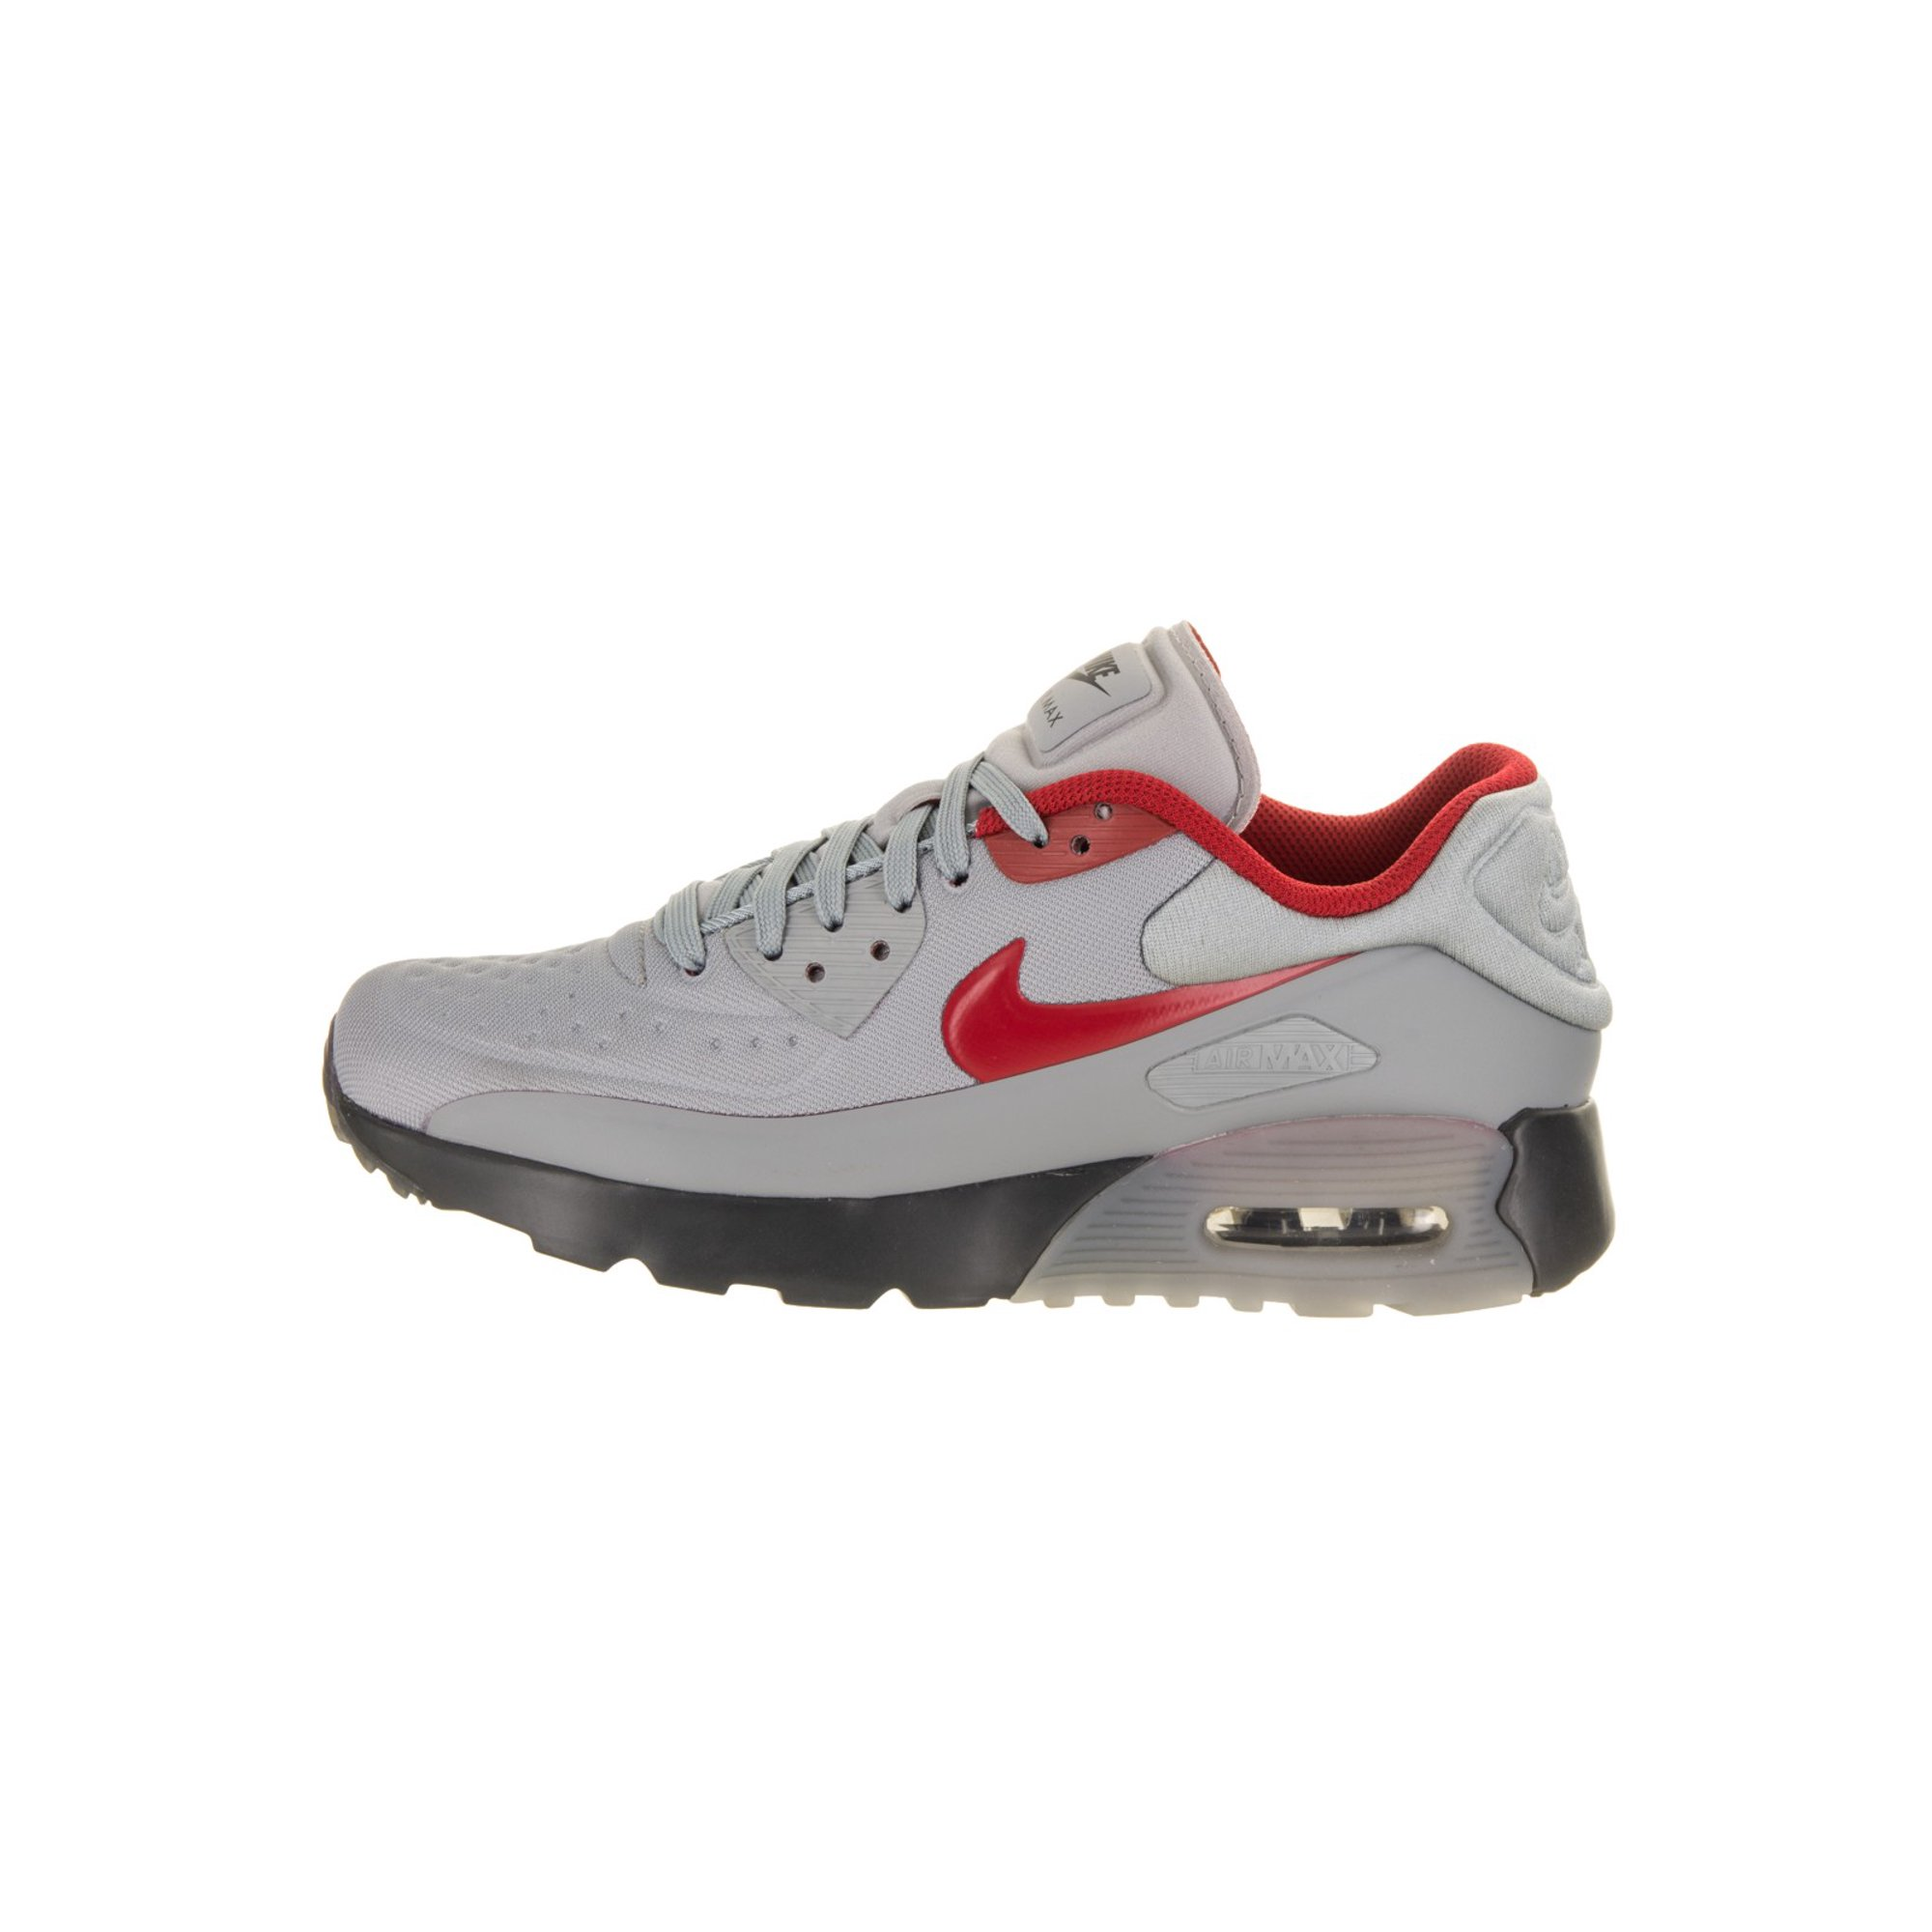 a1bfc0ff7d3a7 Nike Kids Air Max 90 Ultra SE (GS) Running Shoe